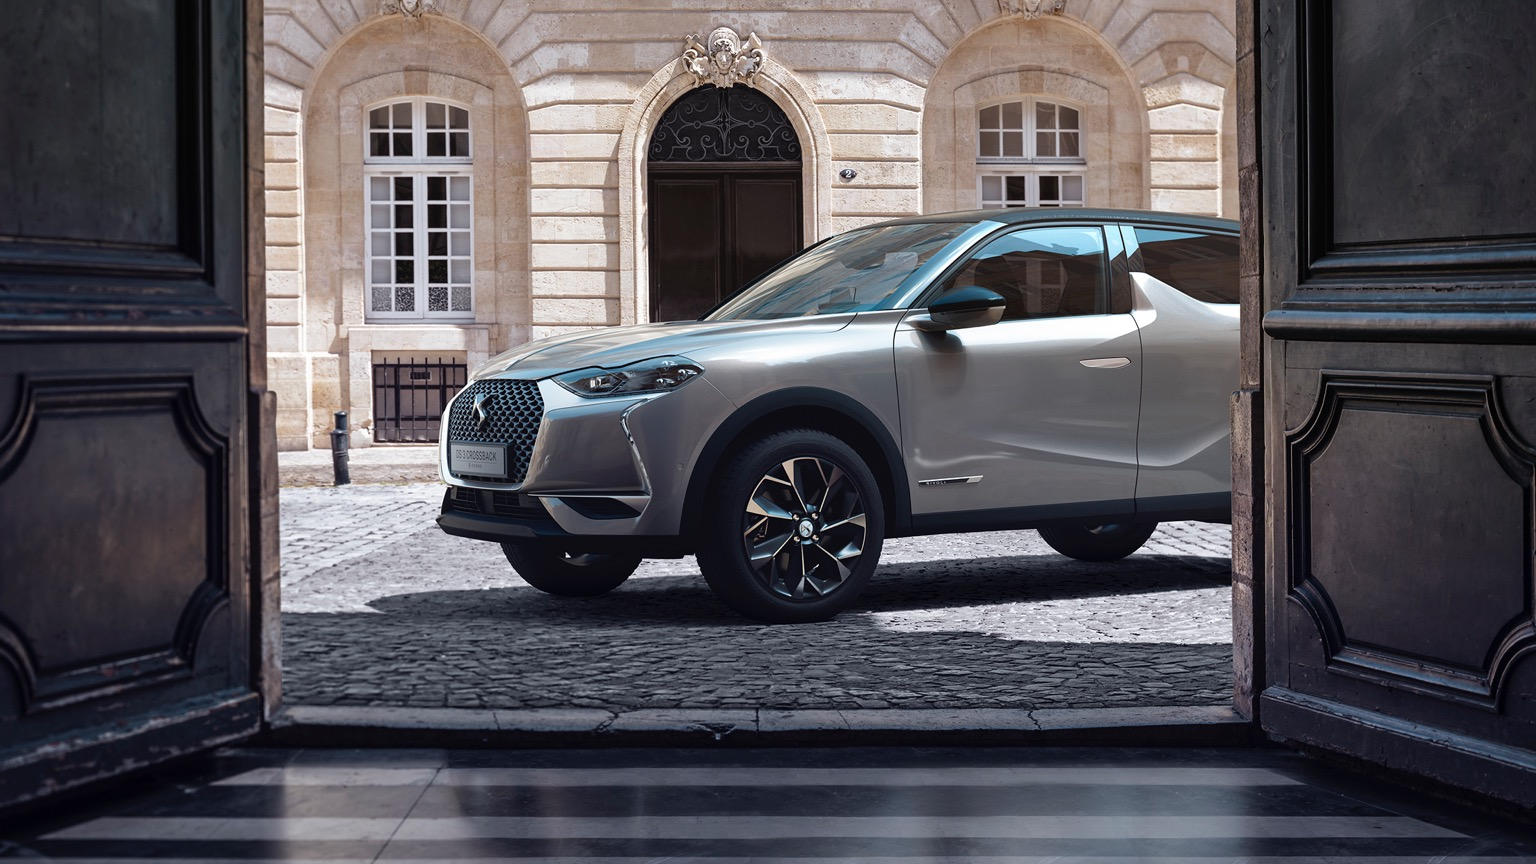 DS_3_Crossback-05-2x.jpg